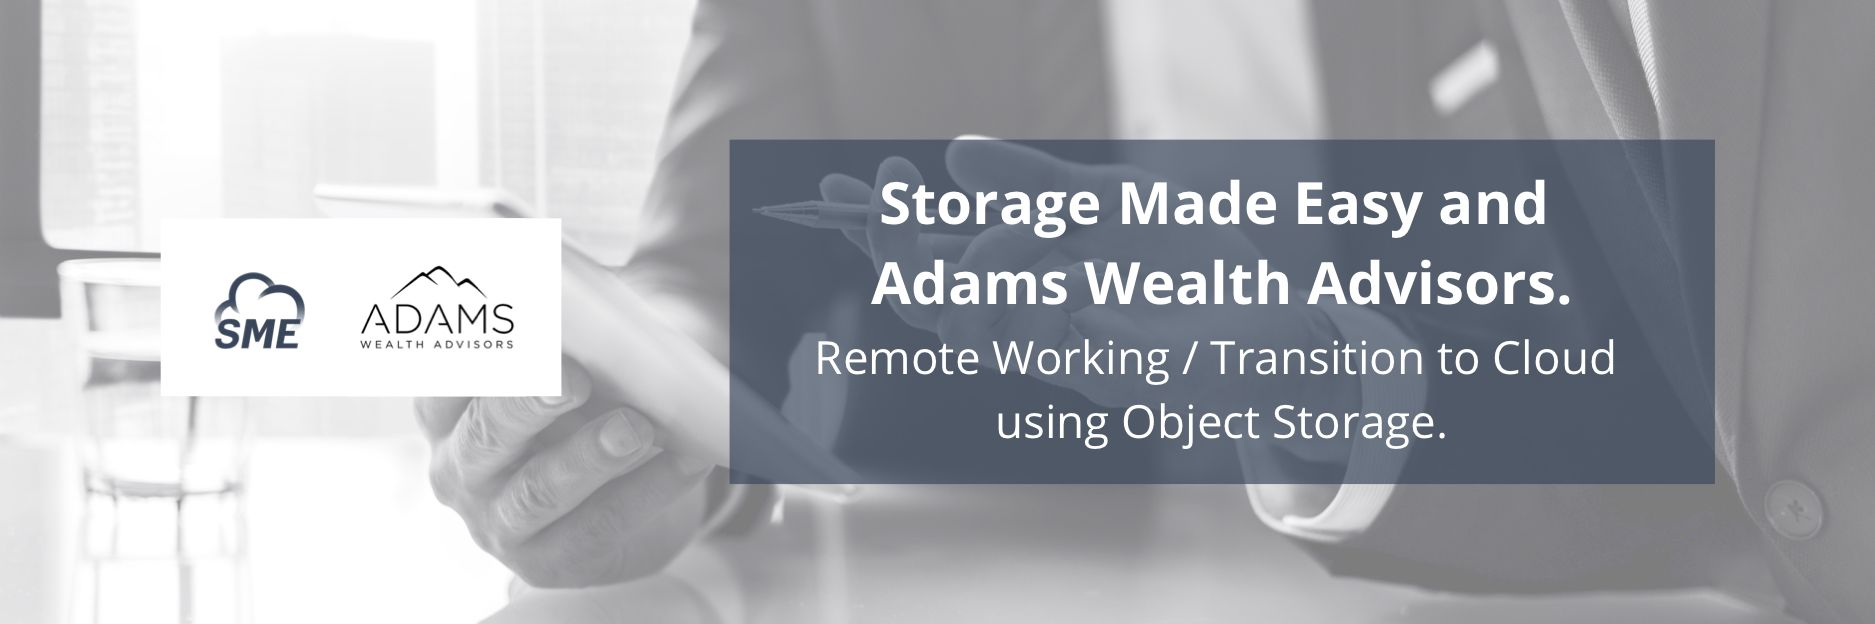 Storage Made Easy And Adams Wealth